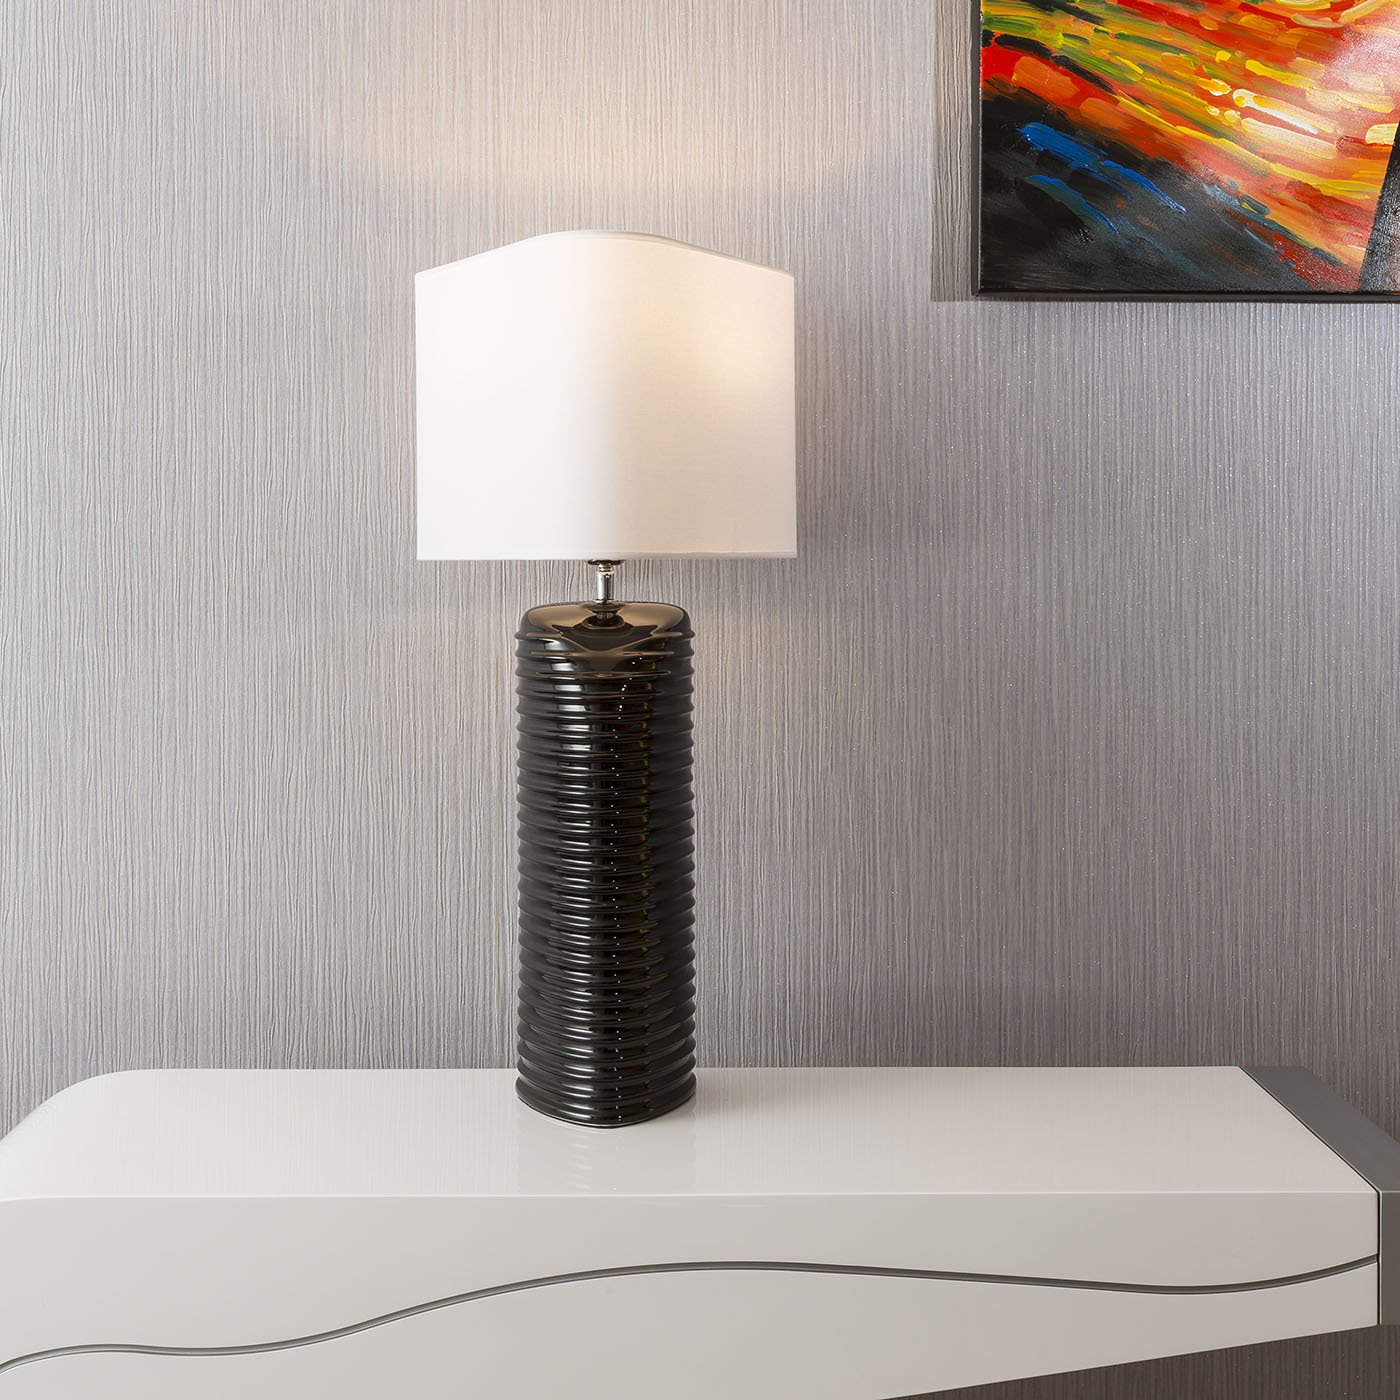 Tall Bedside Lamps Envy Lighting Modern High End Tall Table Bedside Lamp